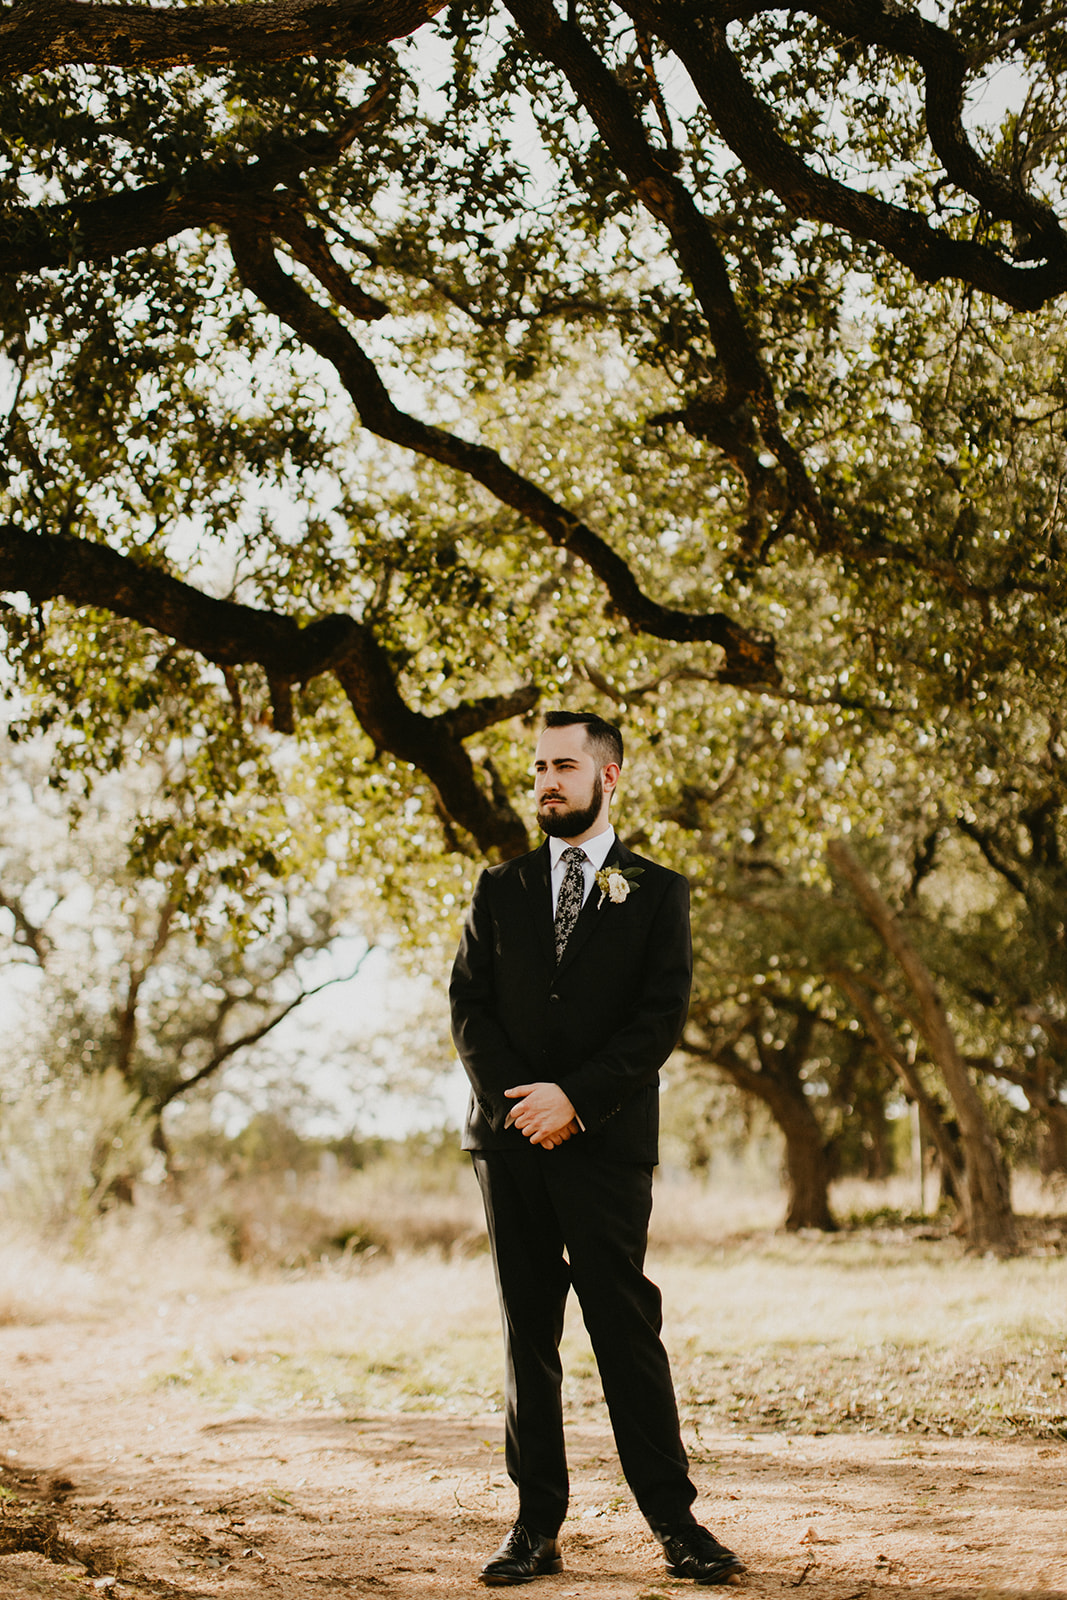 austin wedding planner + coordinator + wedding venue prospect house + groom attire + craft beer + boutonniere